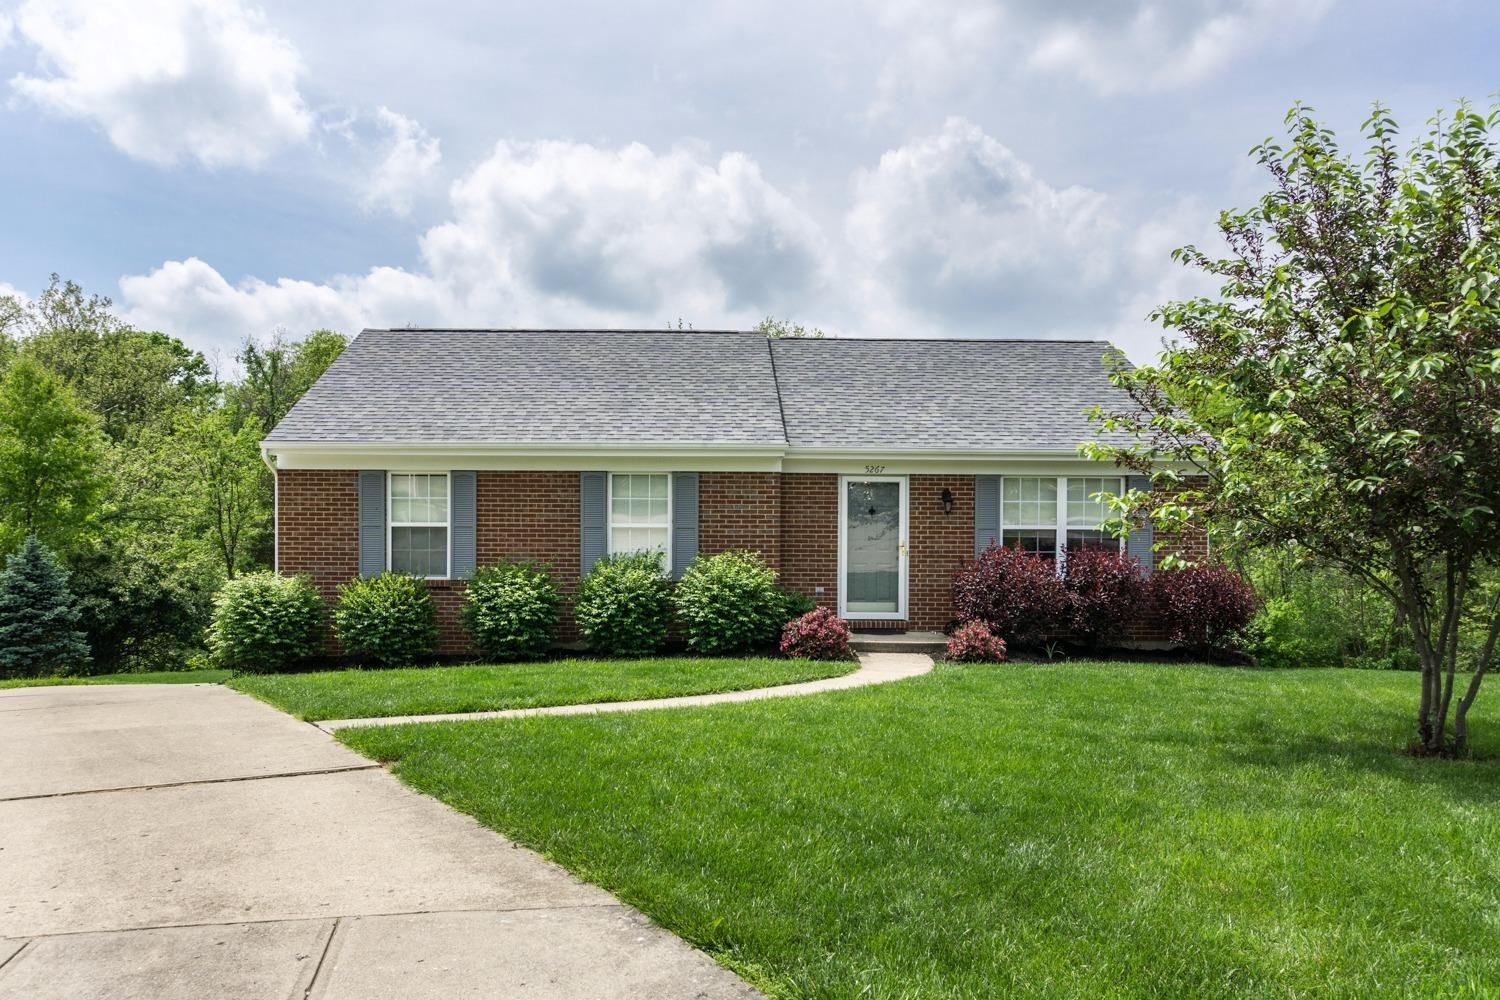 Photo 1 for 5267 Cheyenne Ct Independence, KY 41051